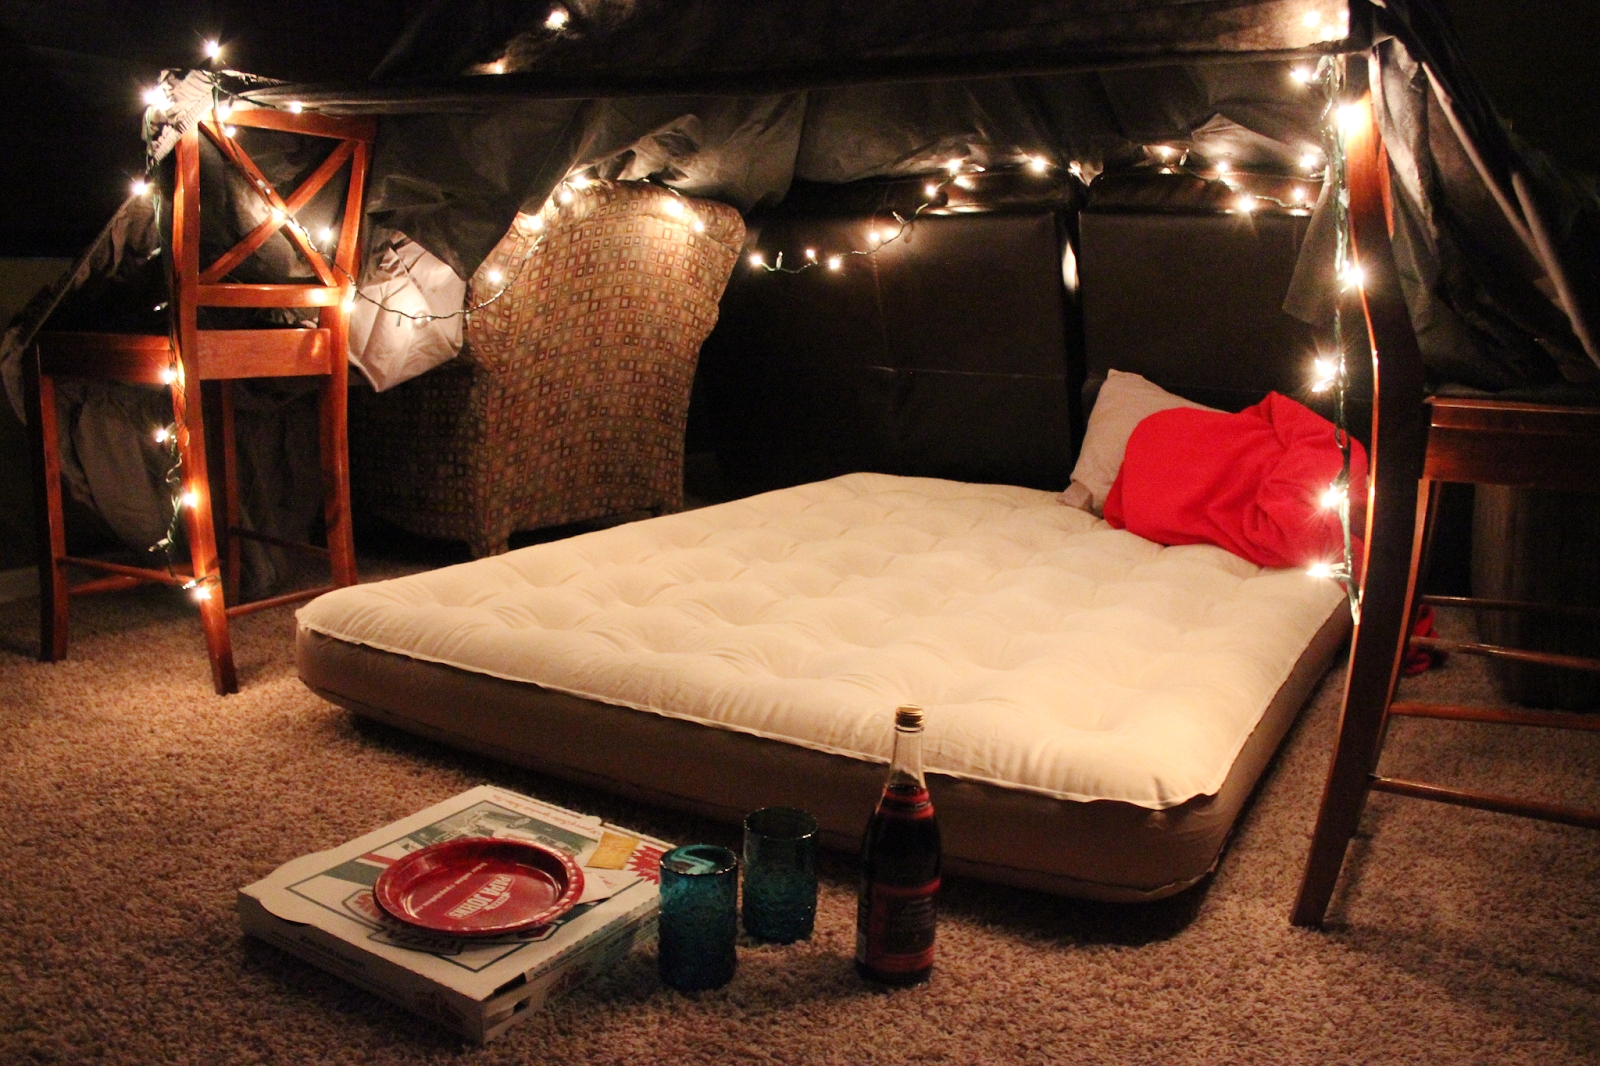 10 Fabulous Romantic Date Ideas At Home 12 months of dates january romantic fort night forts romantic 1